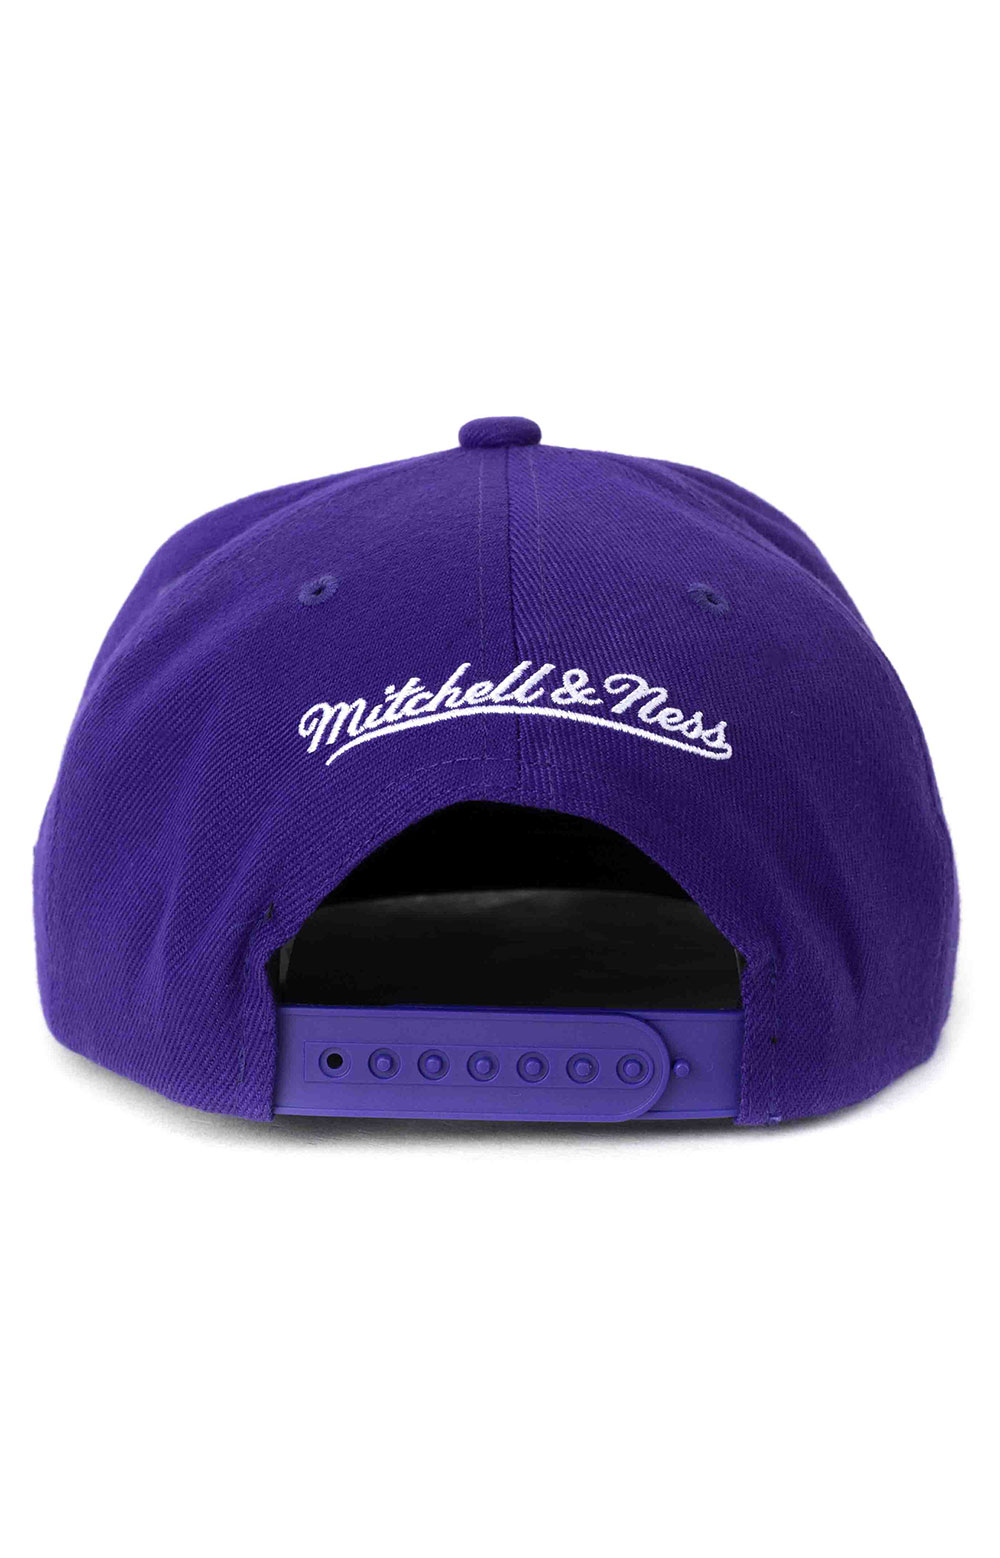 State Flower Snap-Back Hat - Lakers 3